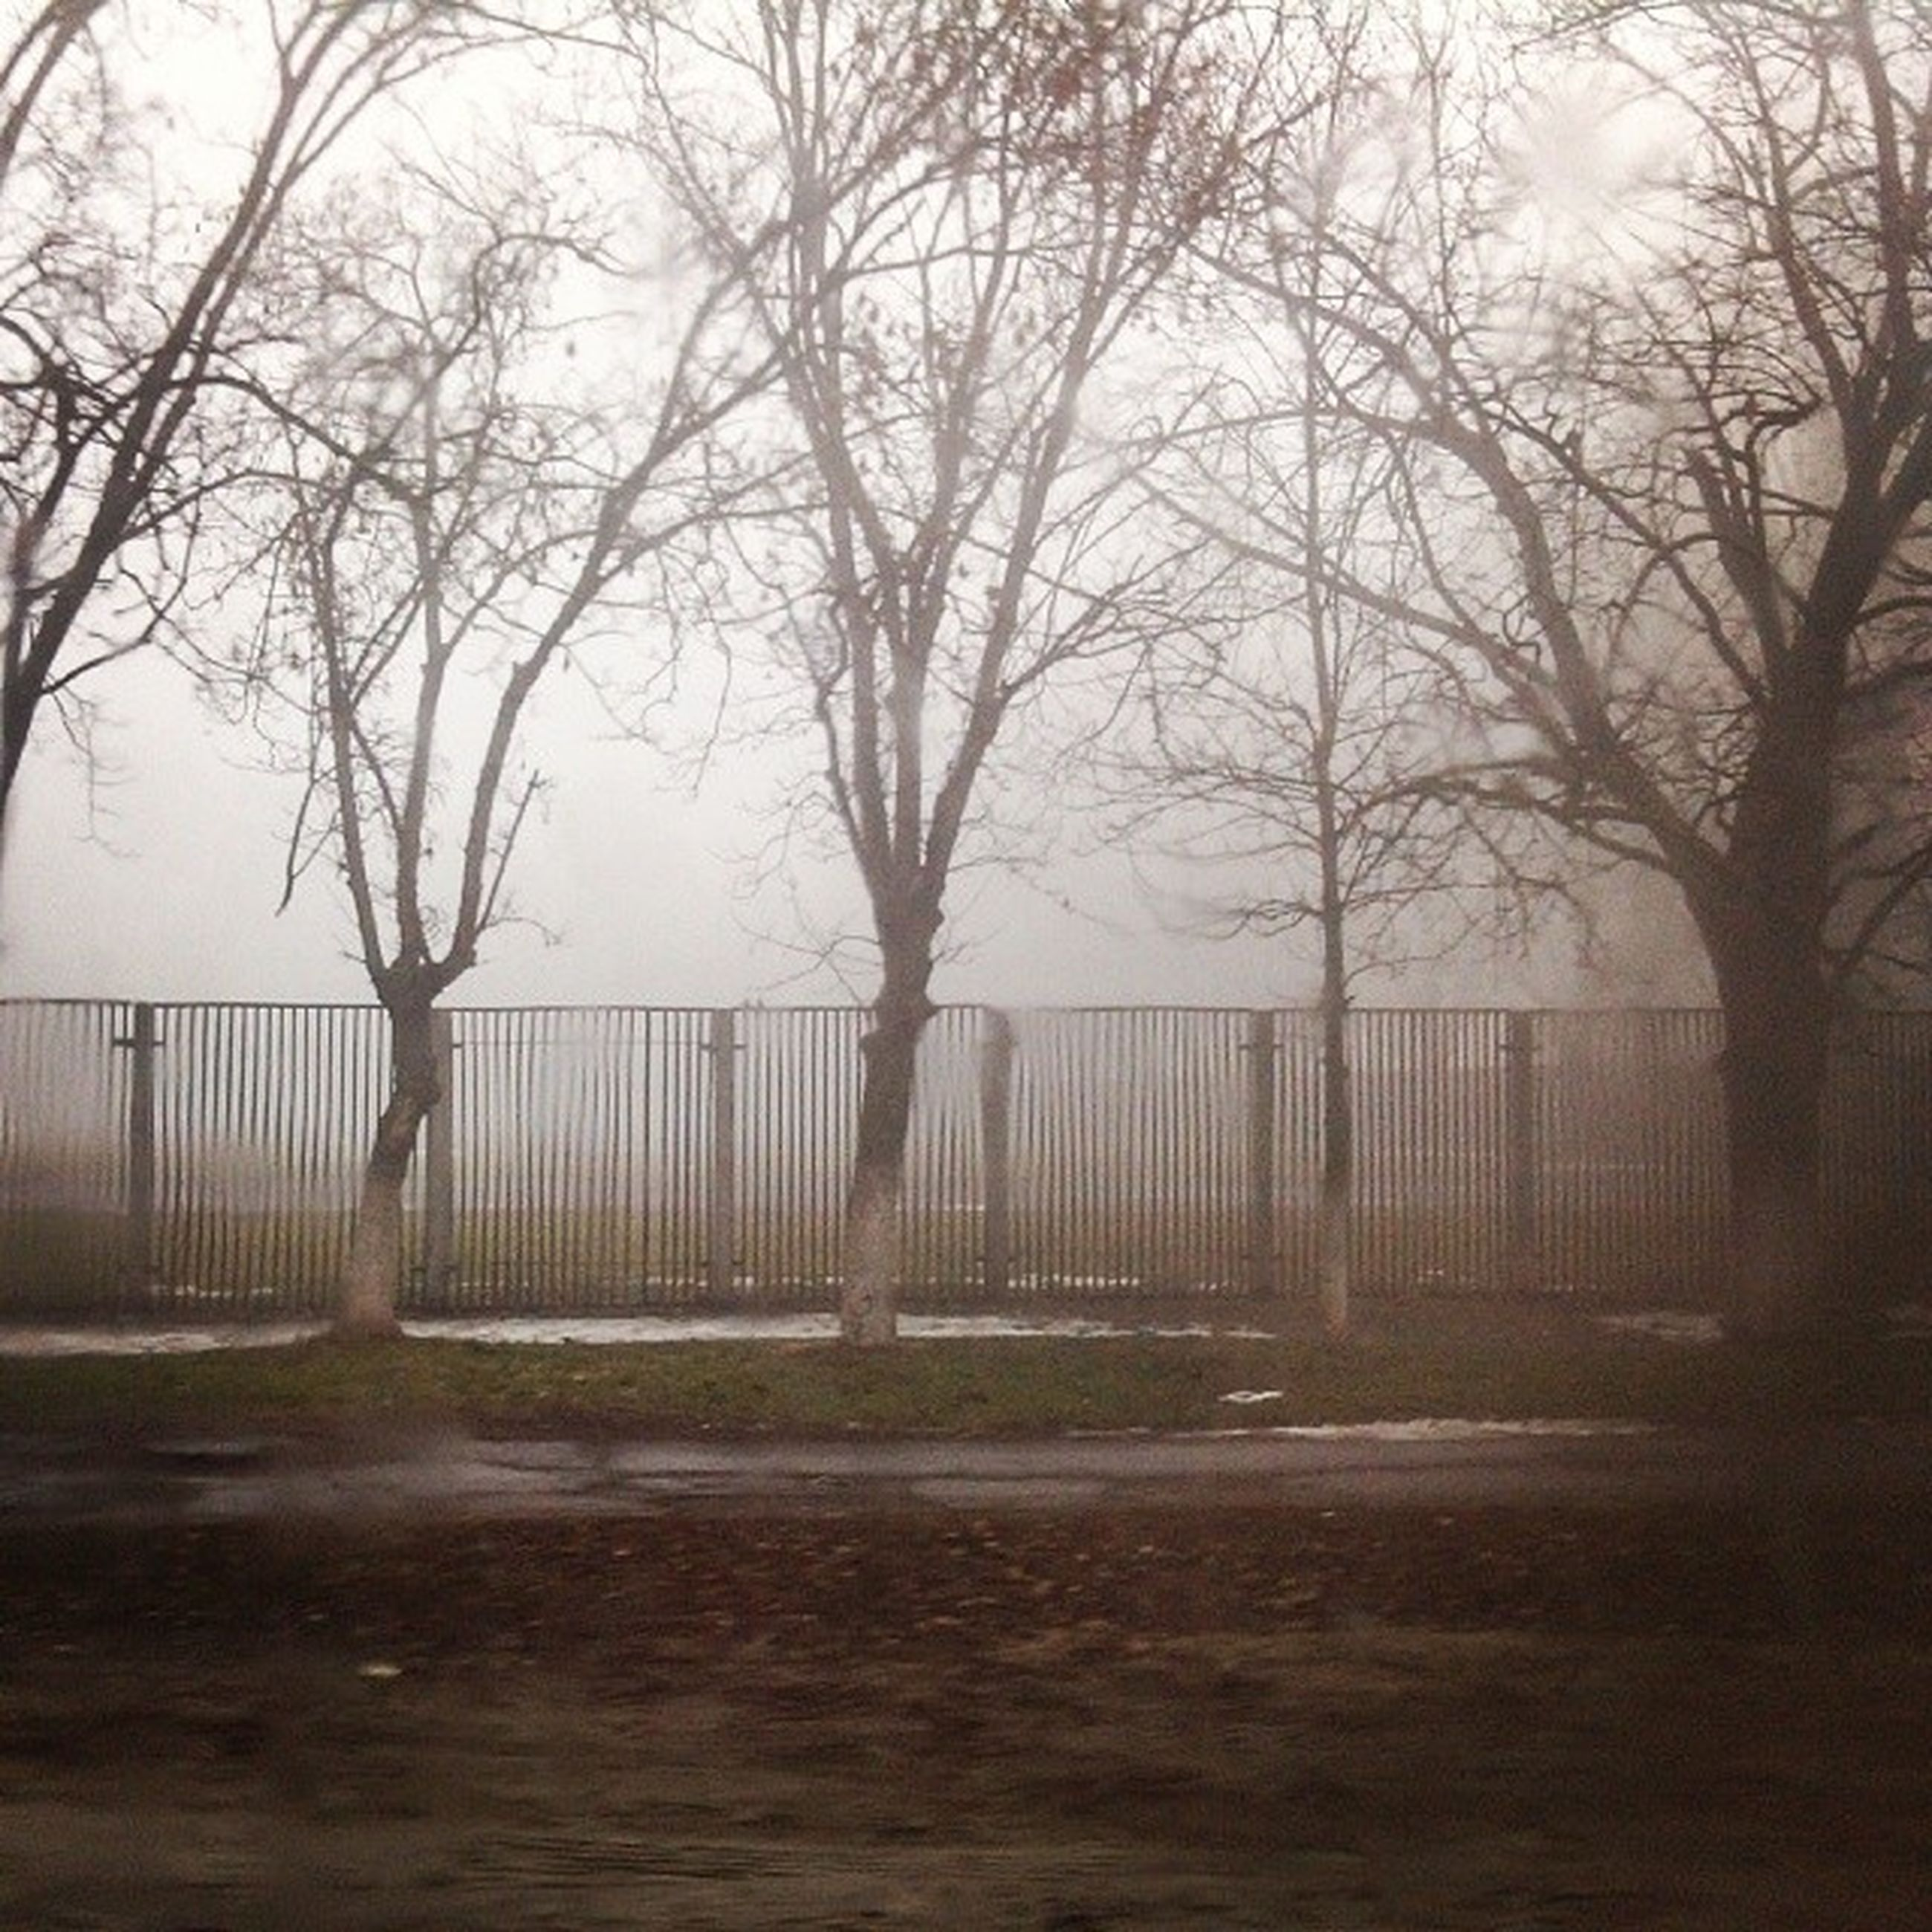 bare tree, tree, tranquility, branch, tranquil scene, water, nature, scenics, beauty in nature, sky, tree trunk, silhouette, landscape, fog, lake, fence, outdoors, day, non-urban scene, idyllic